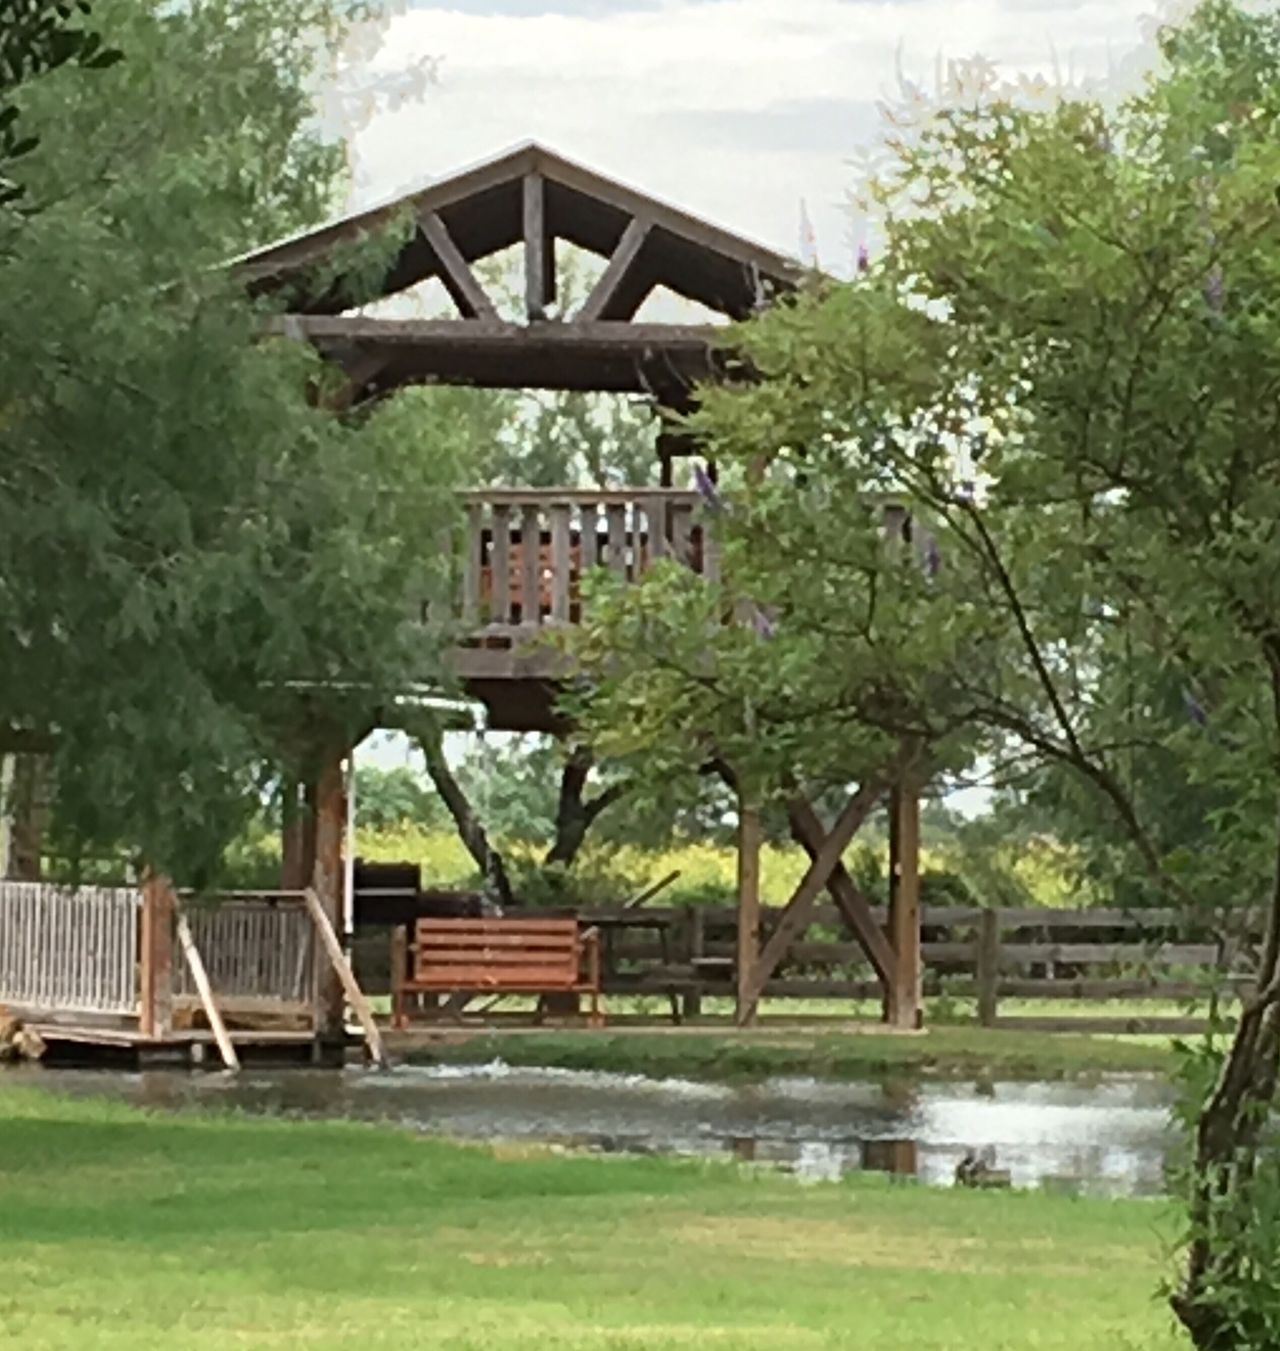 Our party deck and pond in our backyard in south Texas Tree Architecture Built Structure Outdoors Scenics Sky tranquility